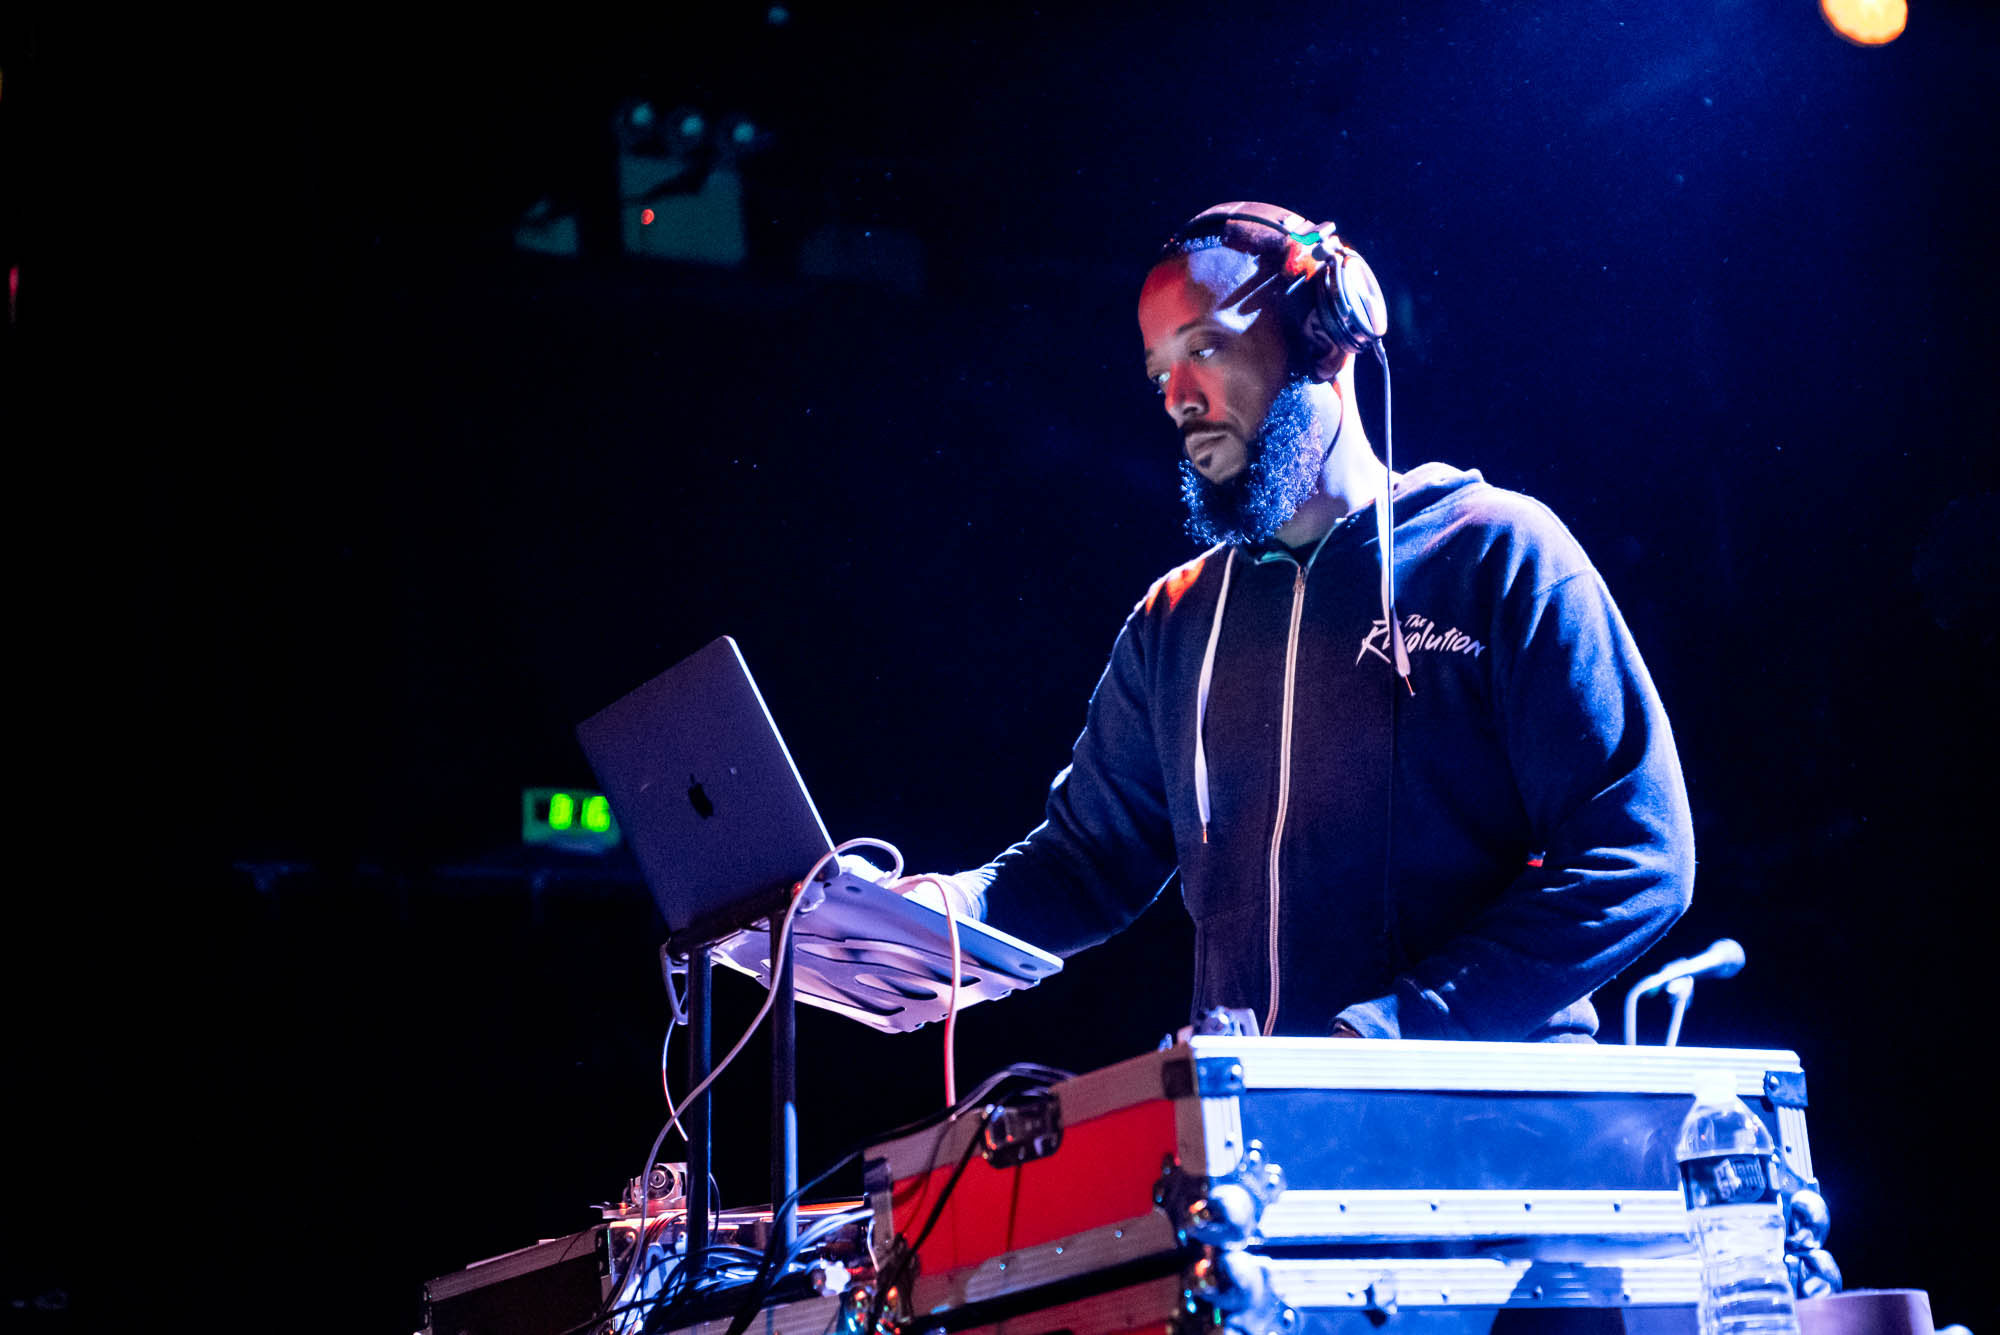 DJ Brainchild performs at Irving Plaza on Thursday, June 13, 2019.